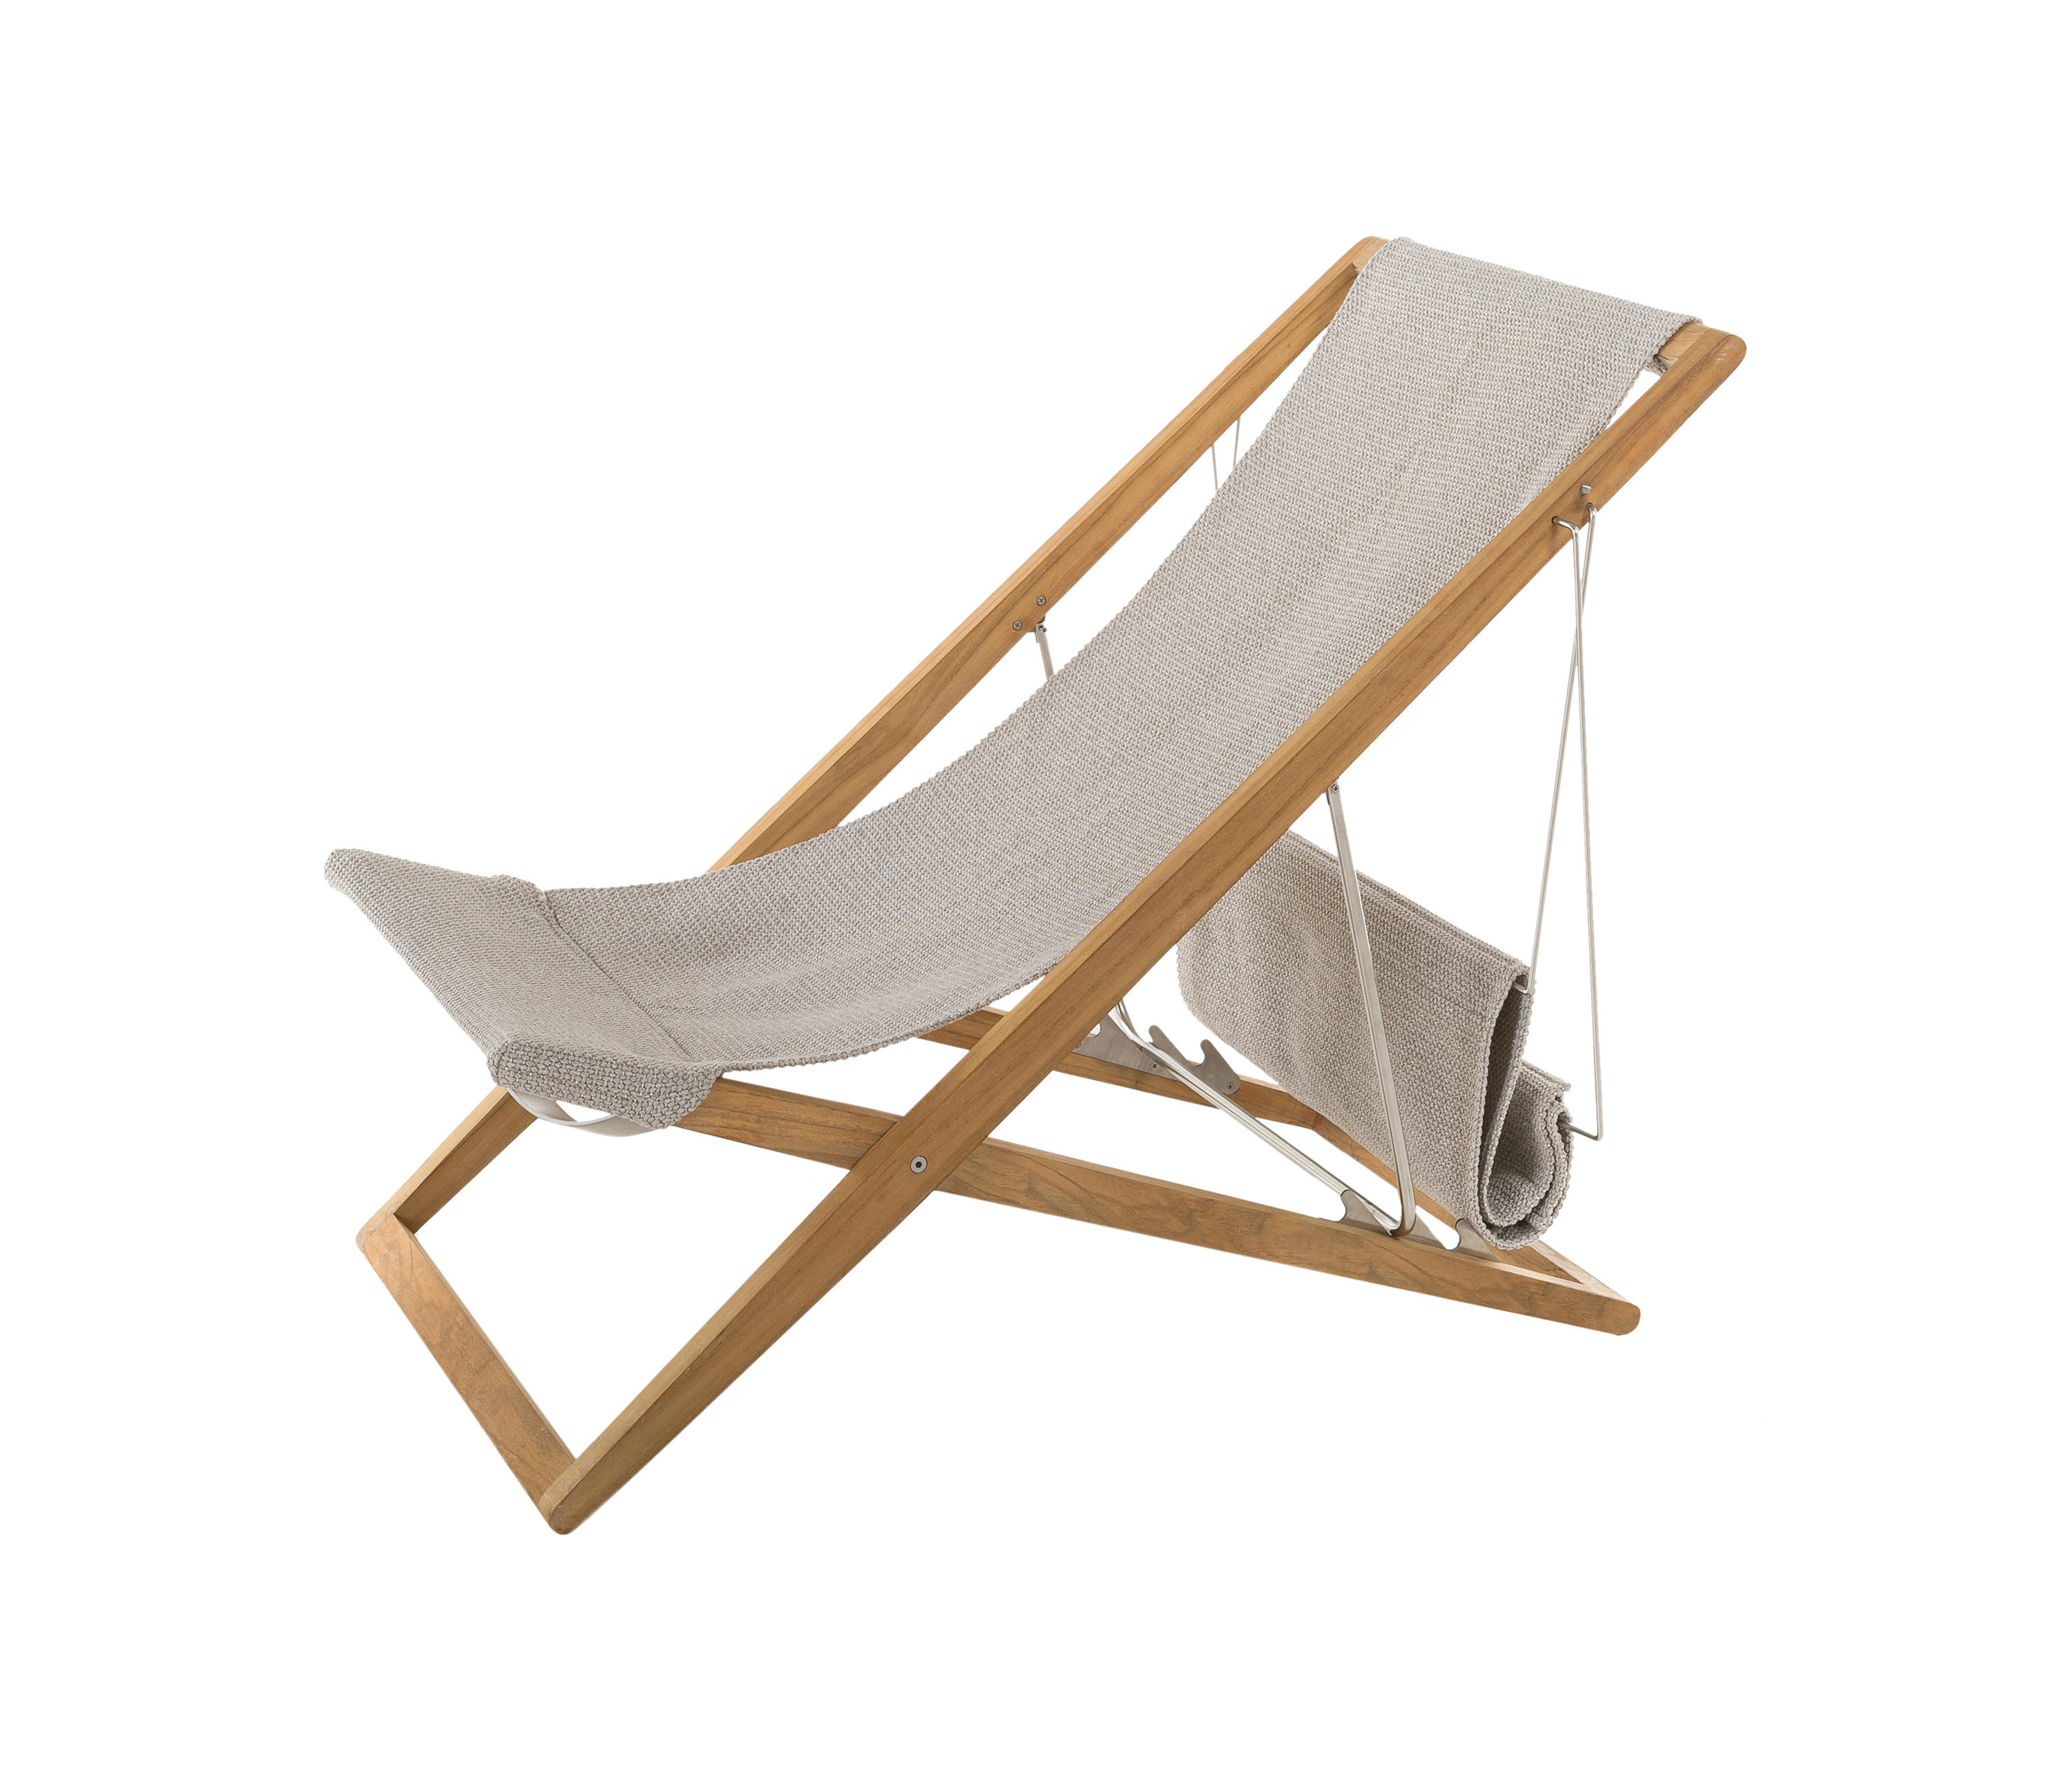 ... Cosette Deckchair with canopy by Unopiù | Sun loungers  sc 1 st  Architonic : deck chair with sun canopy - memphite.com